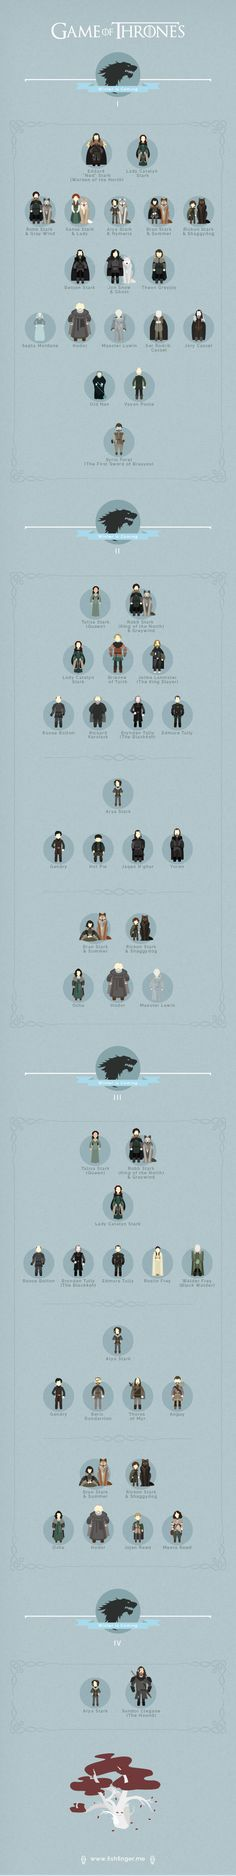 Game of Thrones by Petros Afshar, via Behance